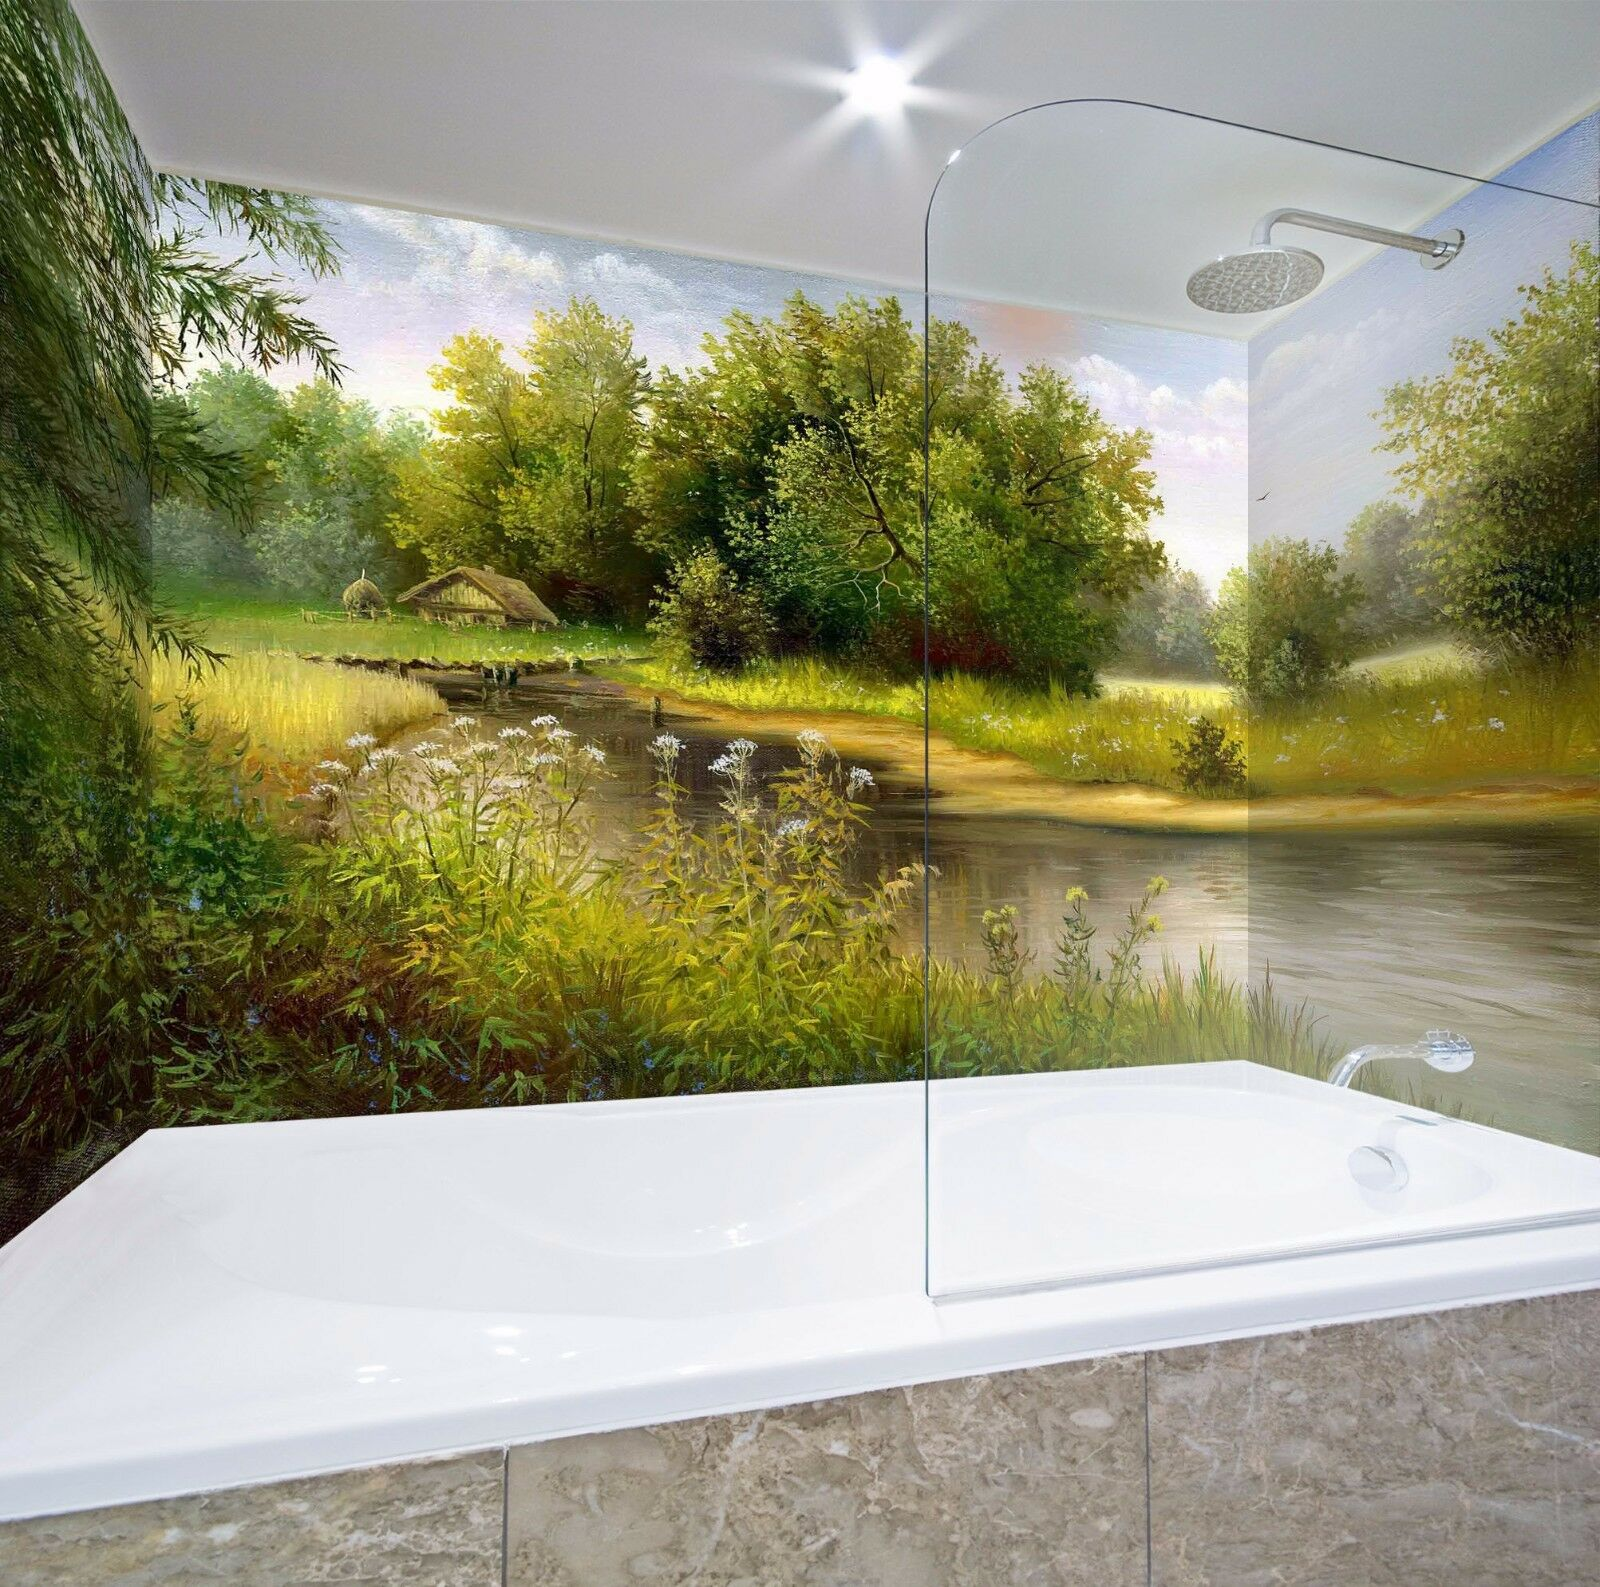 Wallpaper Murals For Bathrooms 3d River Oil Wallpaper Bathroom Print Decal Deco Aj Wallpaper Au